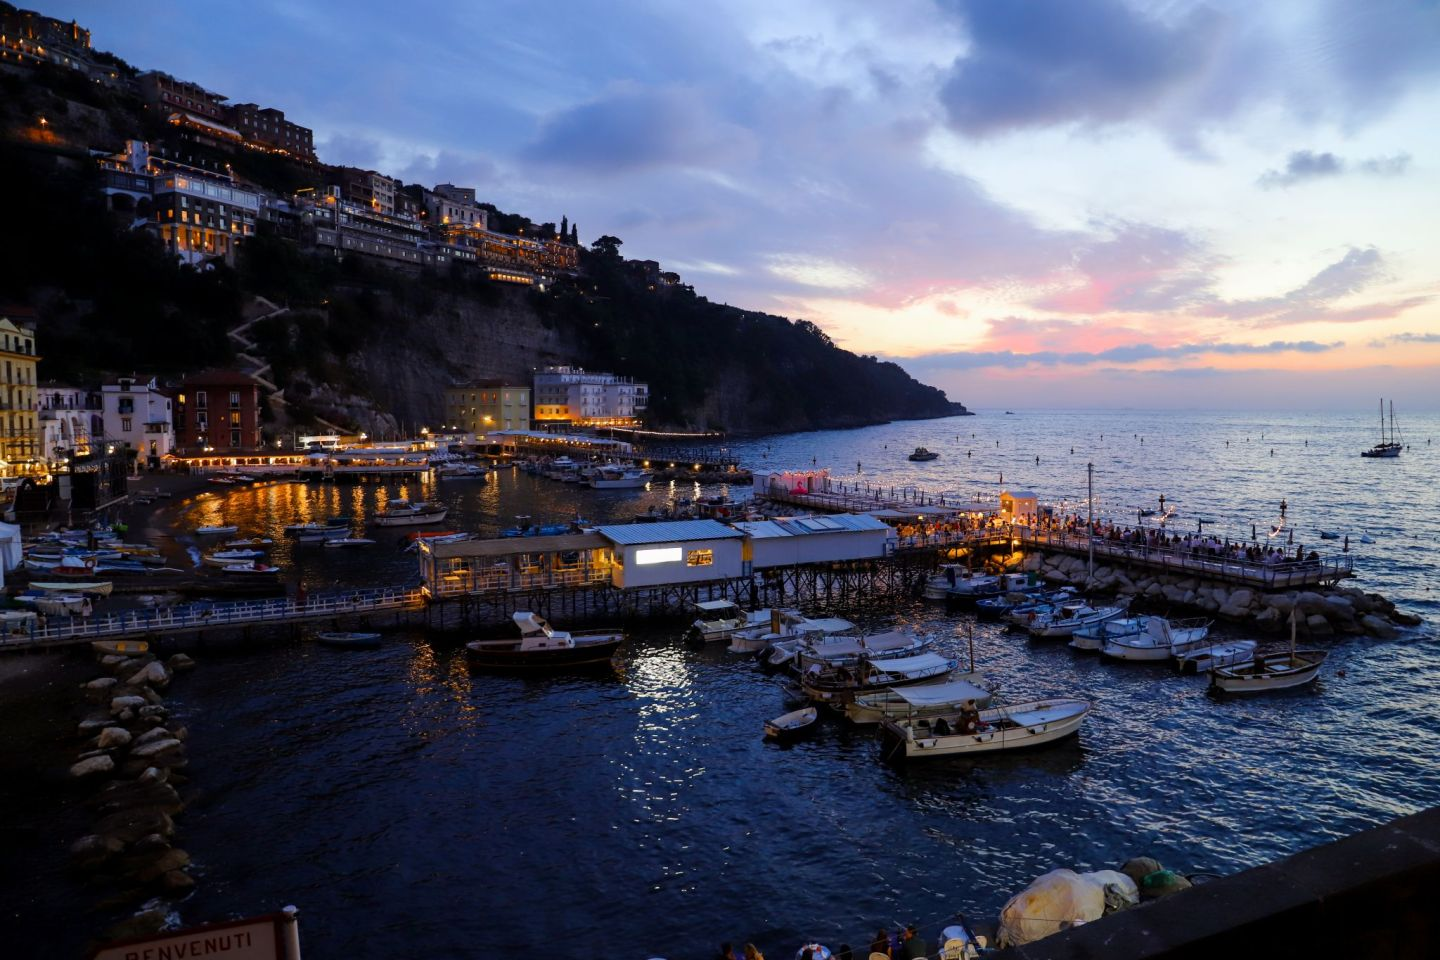 Sunset in Sorrento image